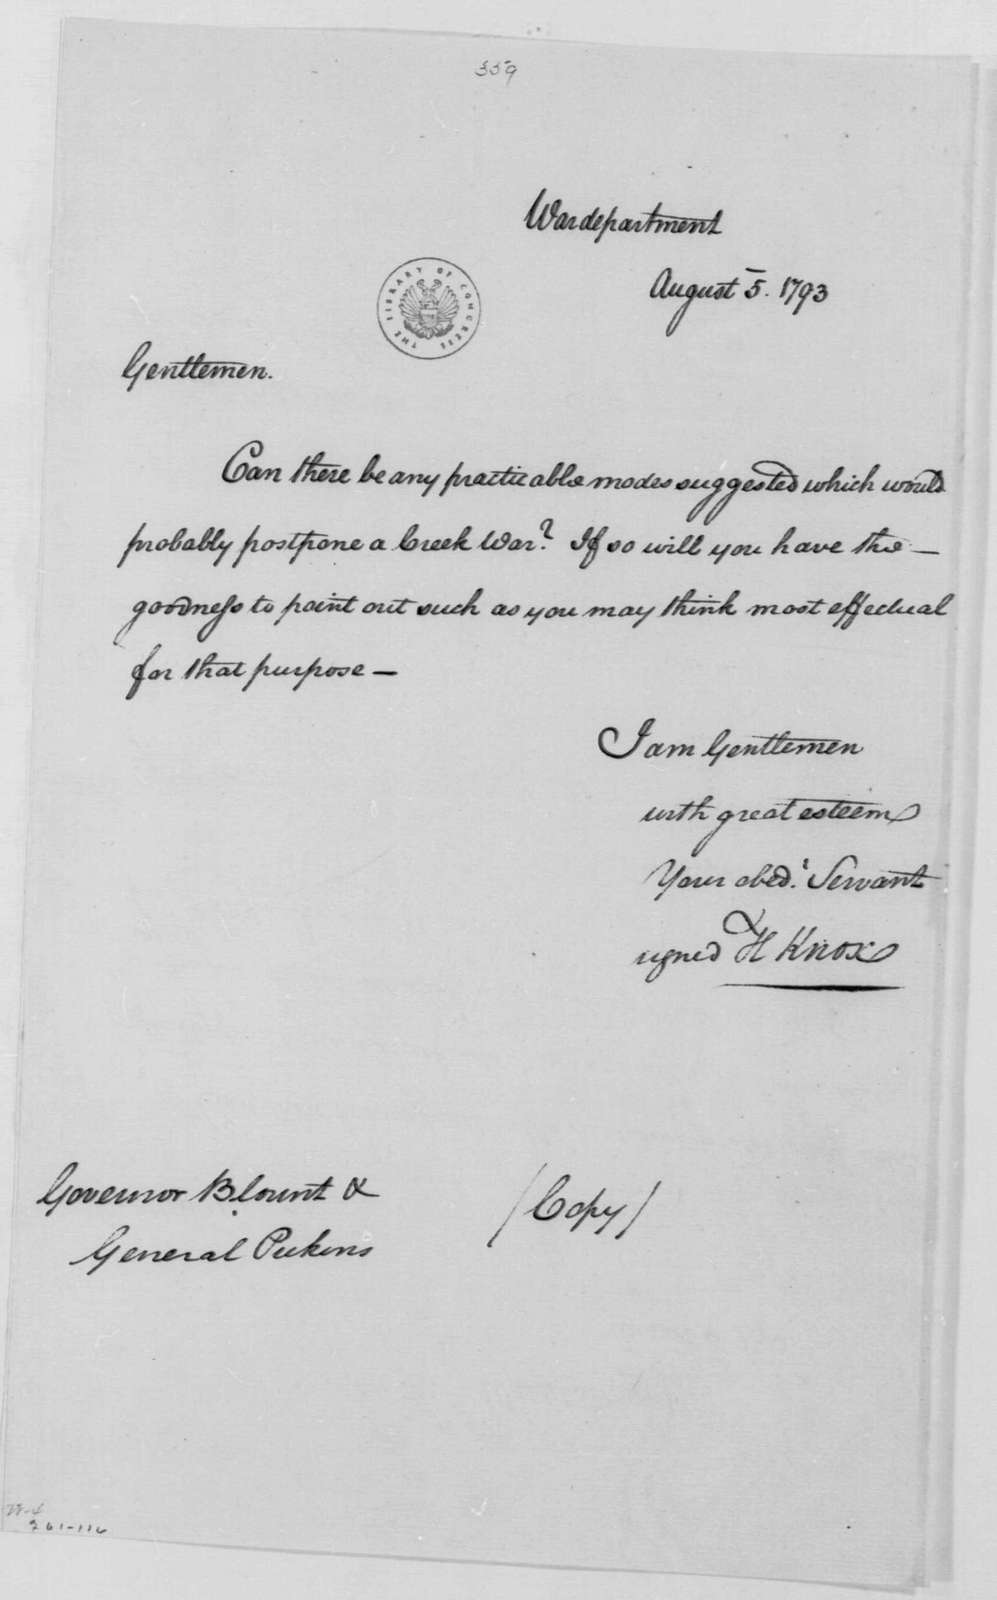 George Washington Papers, Series 4, General Correspondence: Henry Knox to Andrew Pickens and William Blount, August 5, 1793